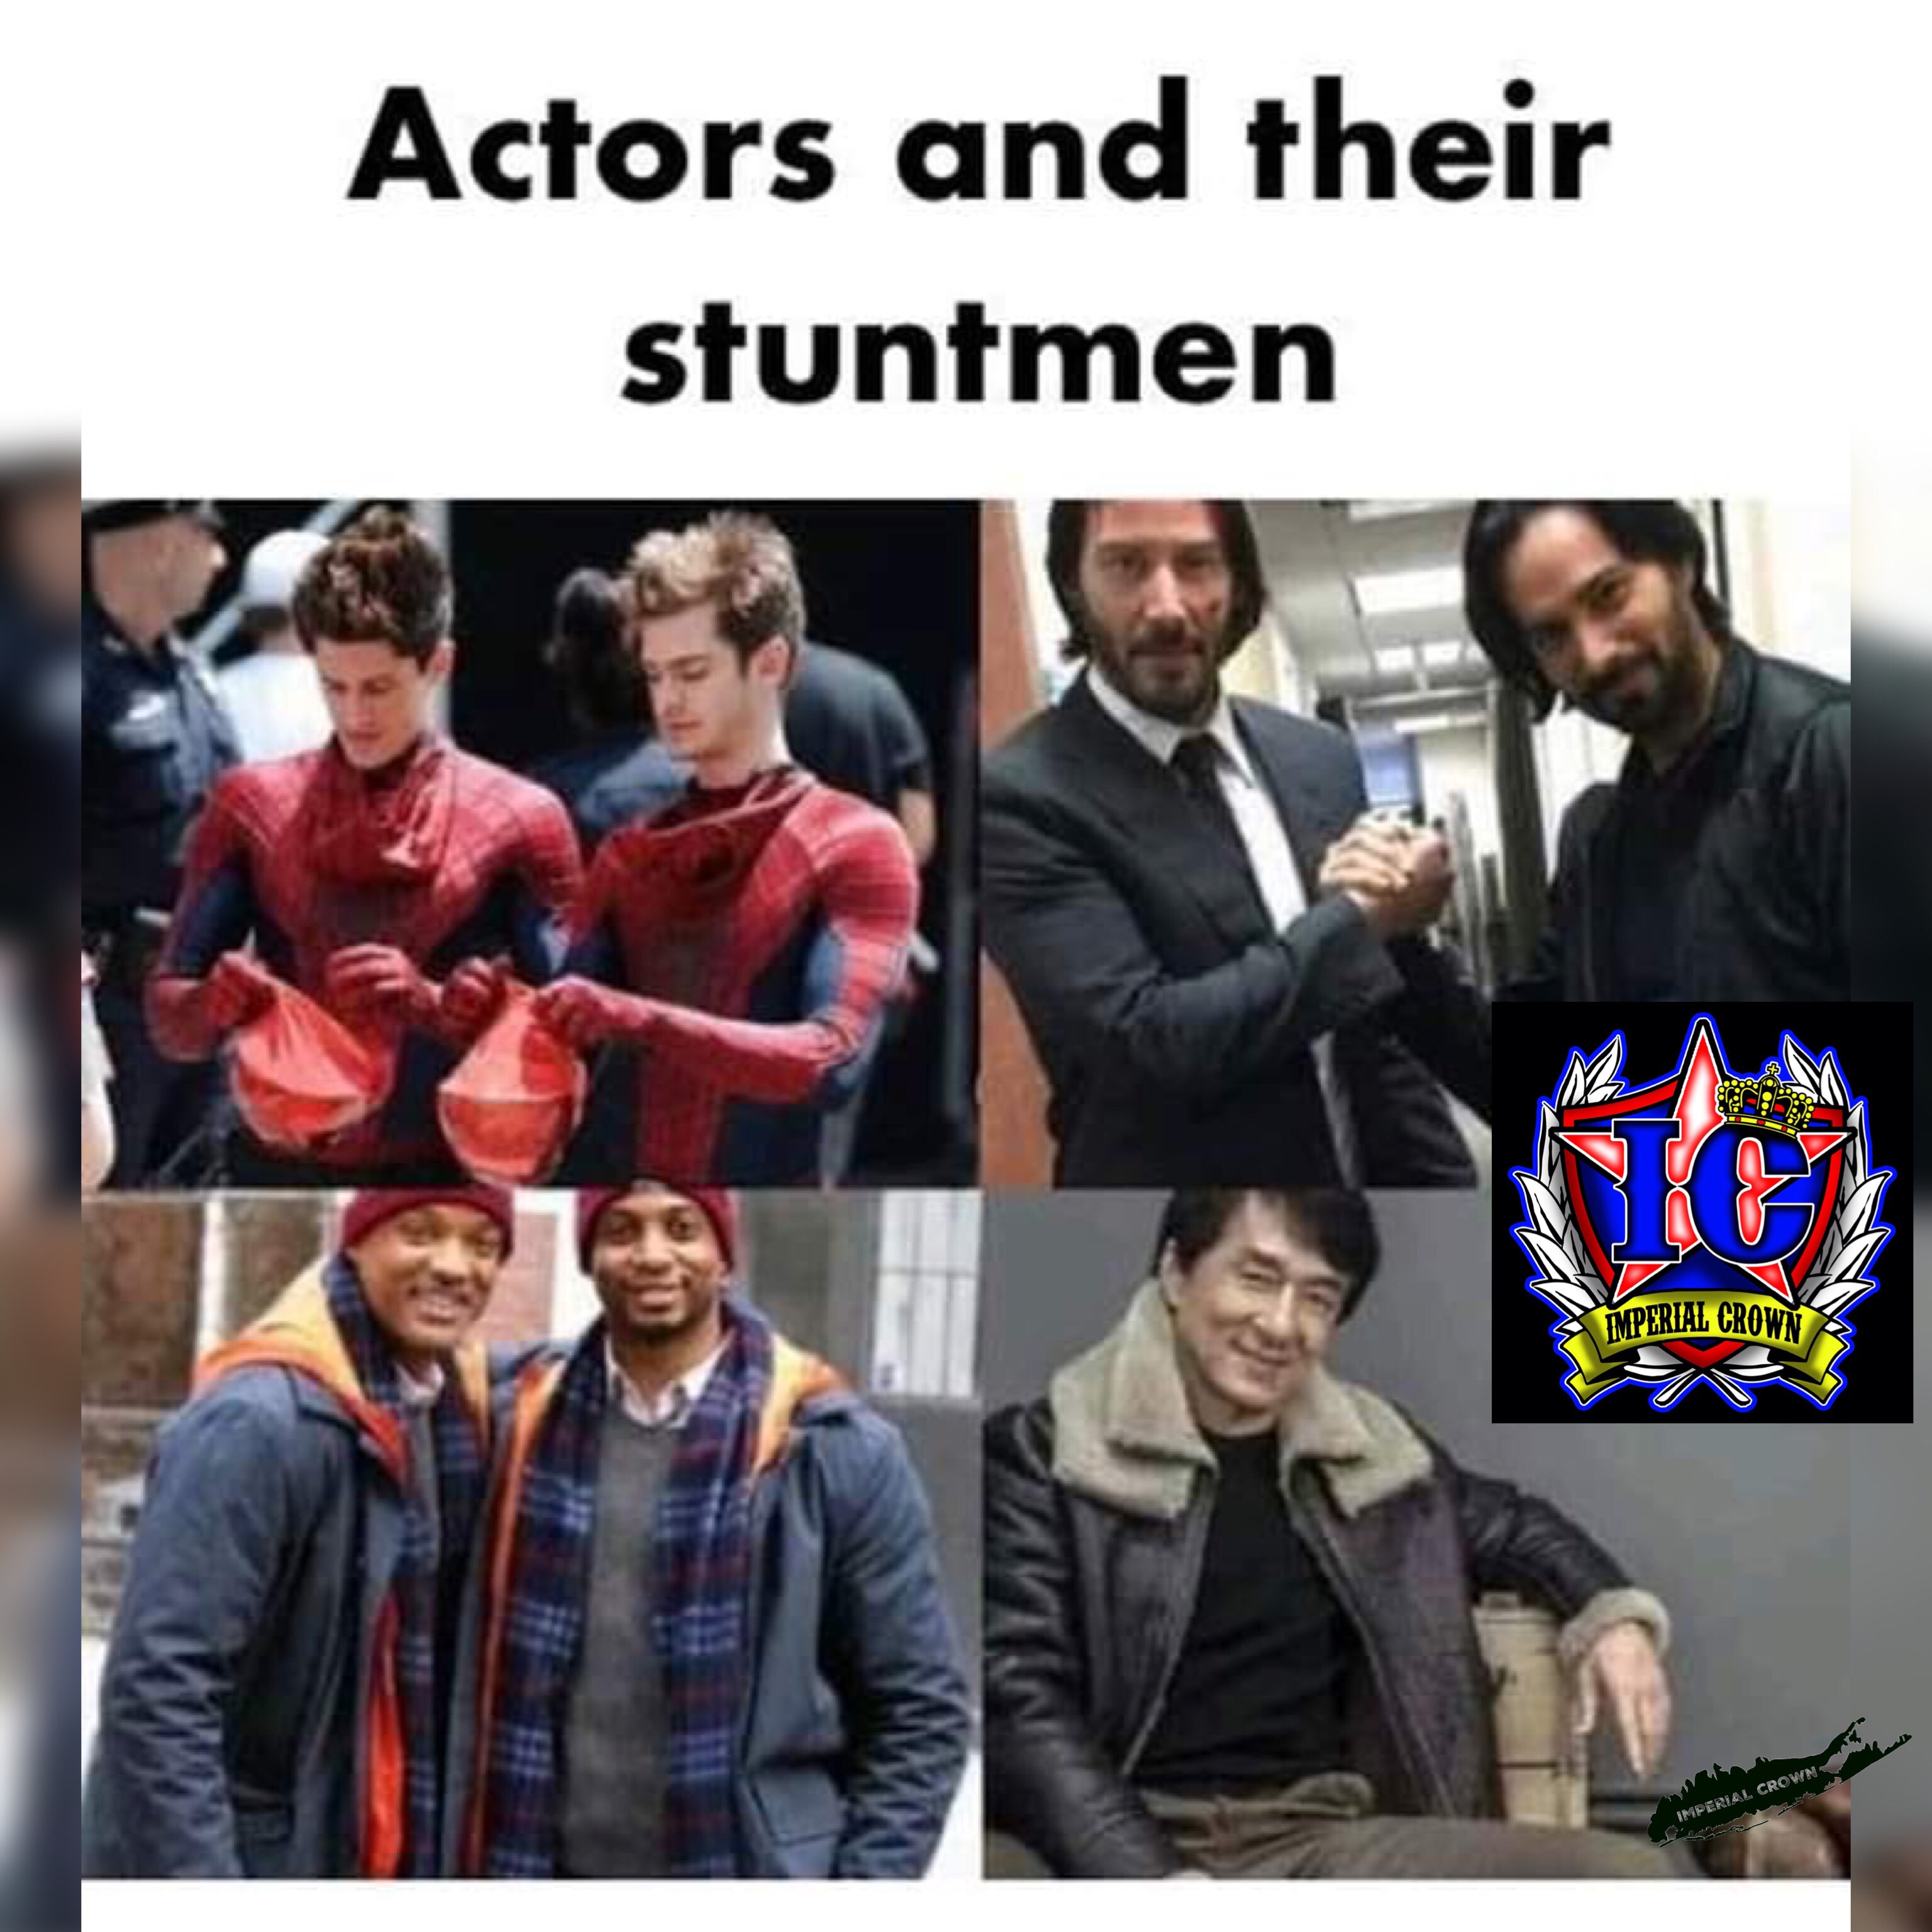 Actors and theirs stuntmen